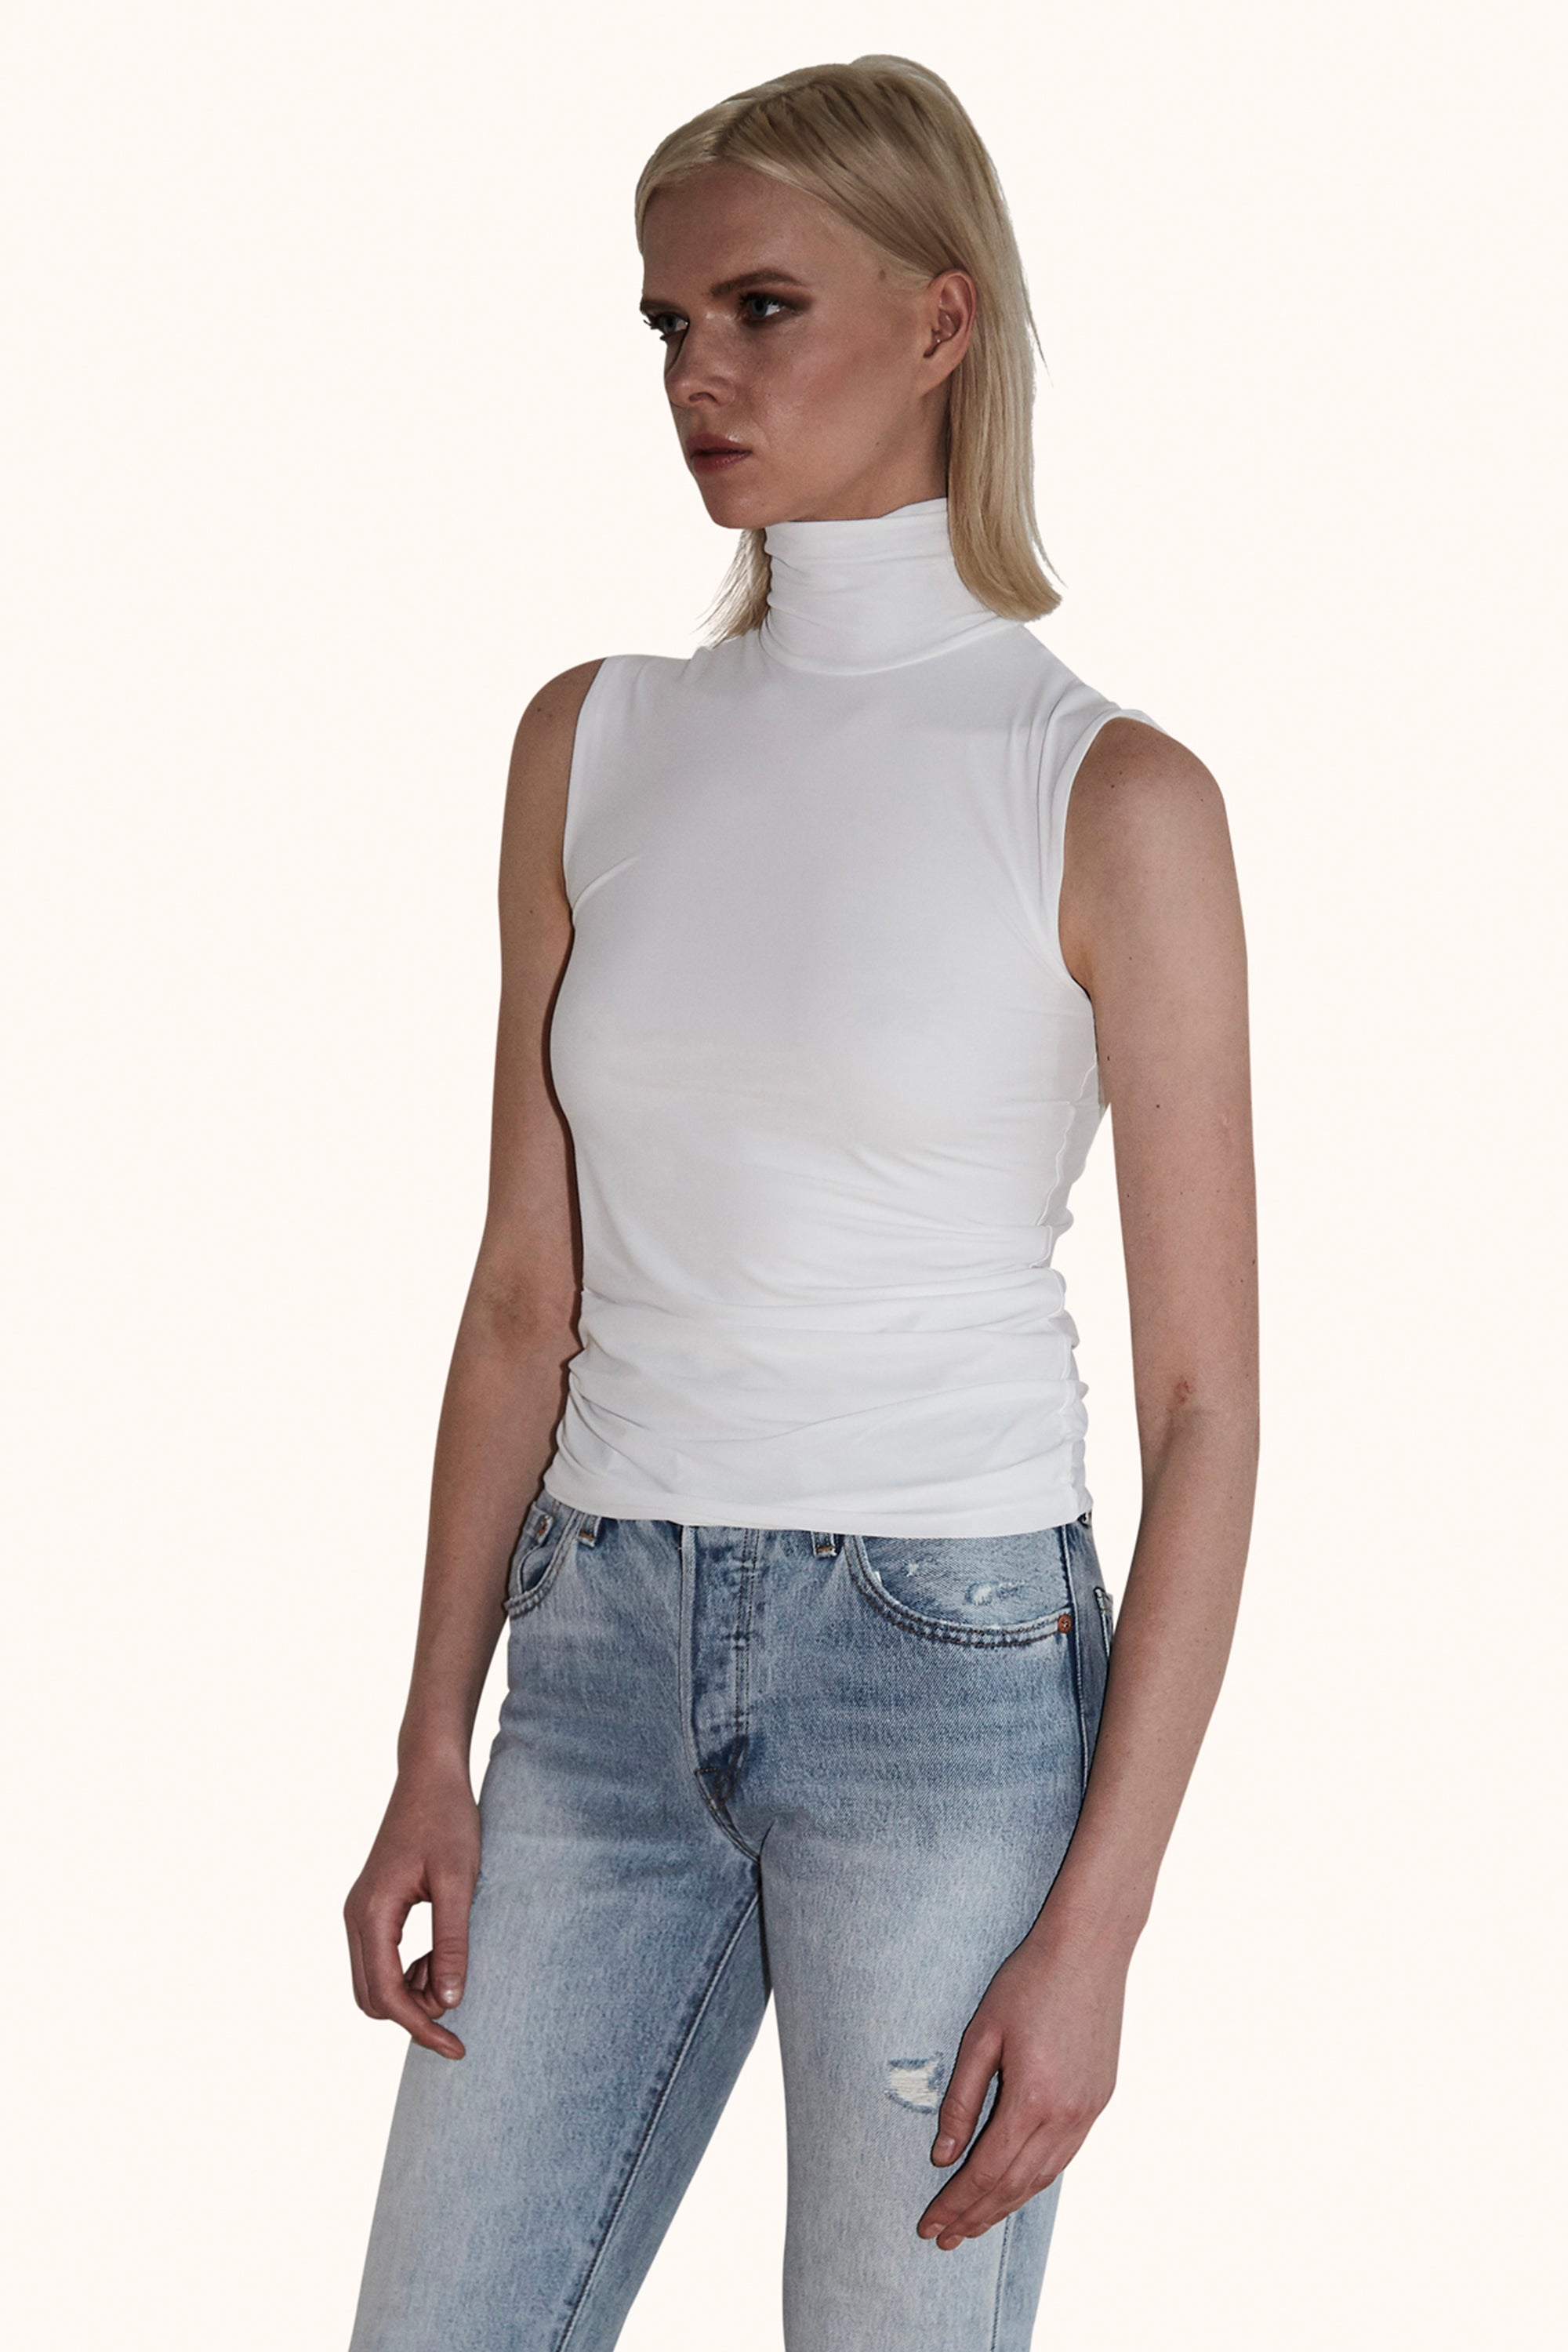 Nora Top in White